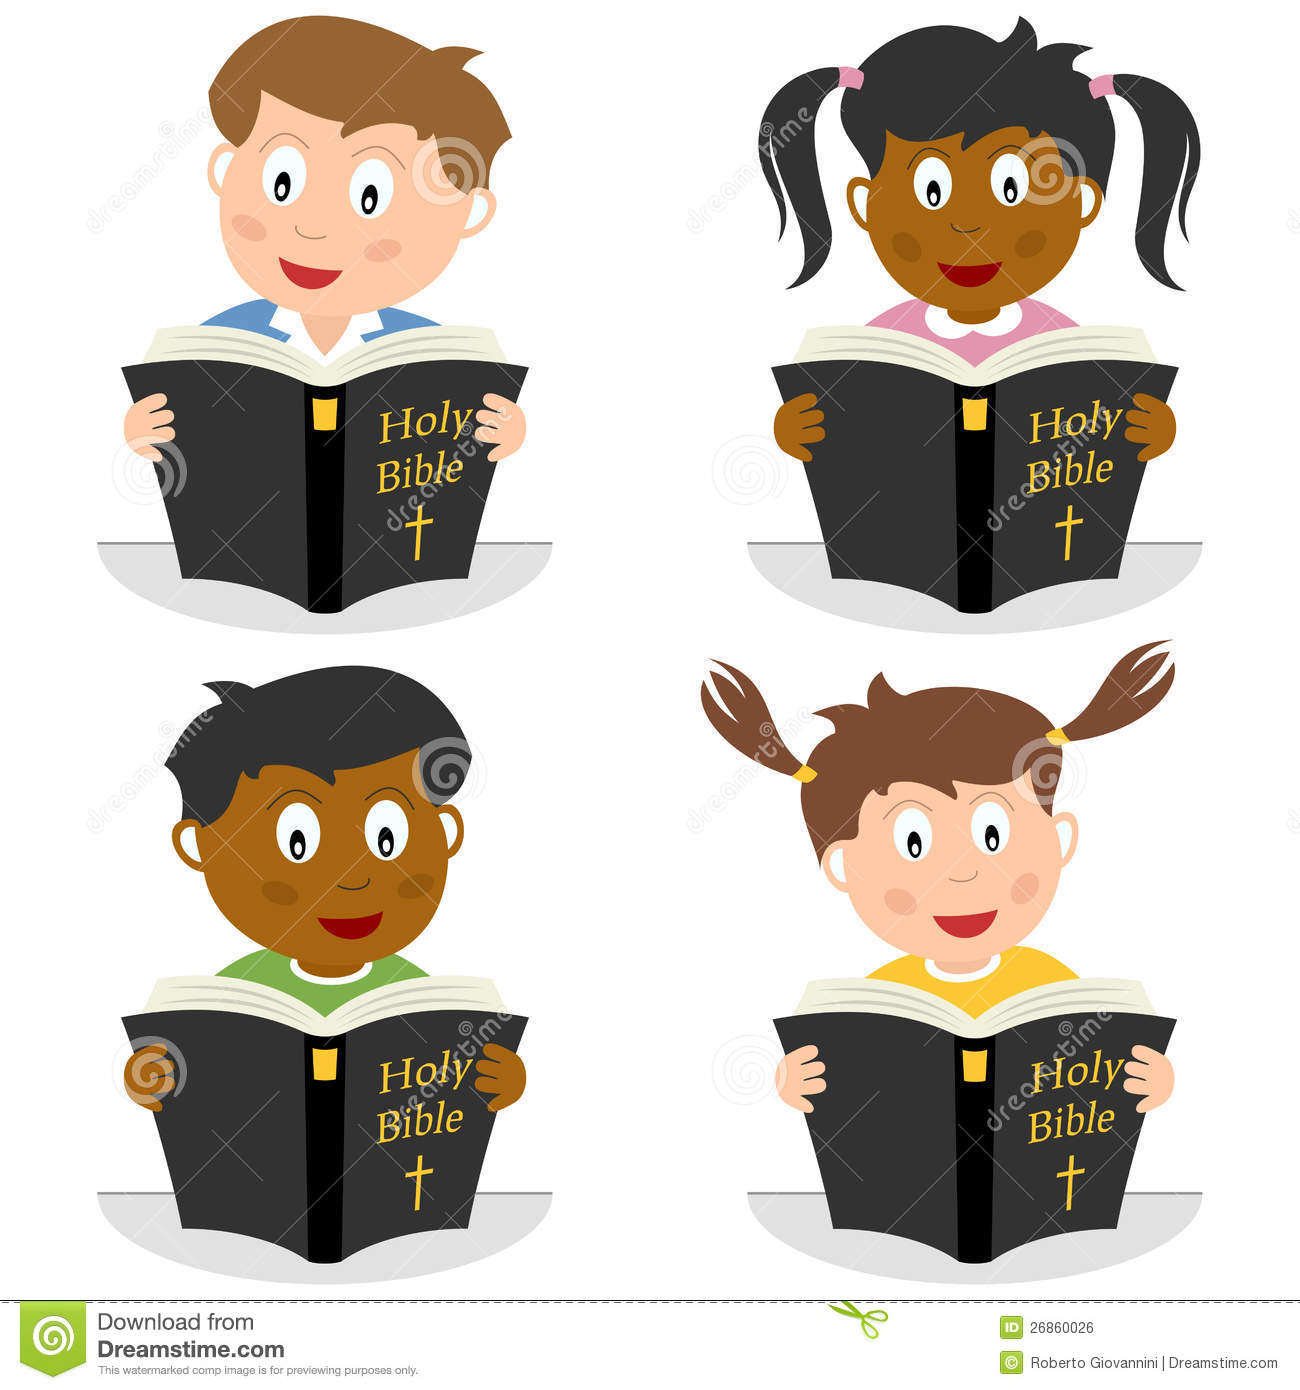 Child Reading Bible Stock Illustrations 210 Child Reading Bible Stock Illustrations Vectors Clipart Dreamstime